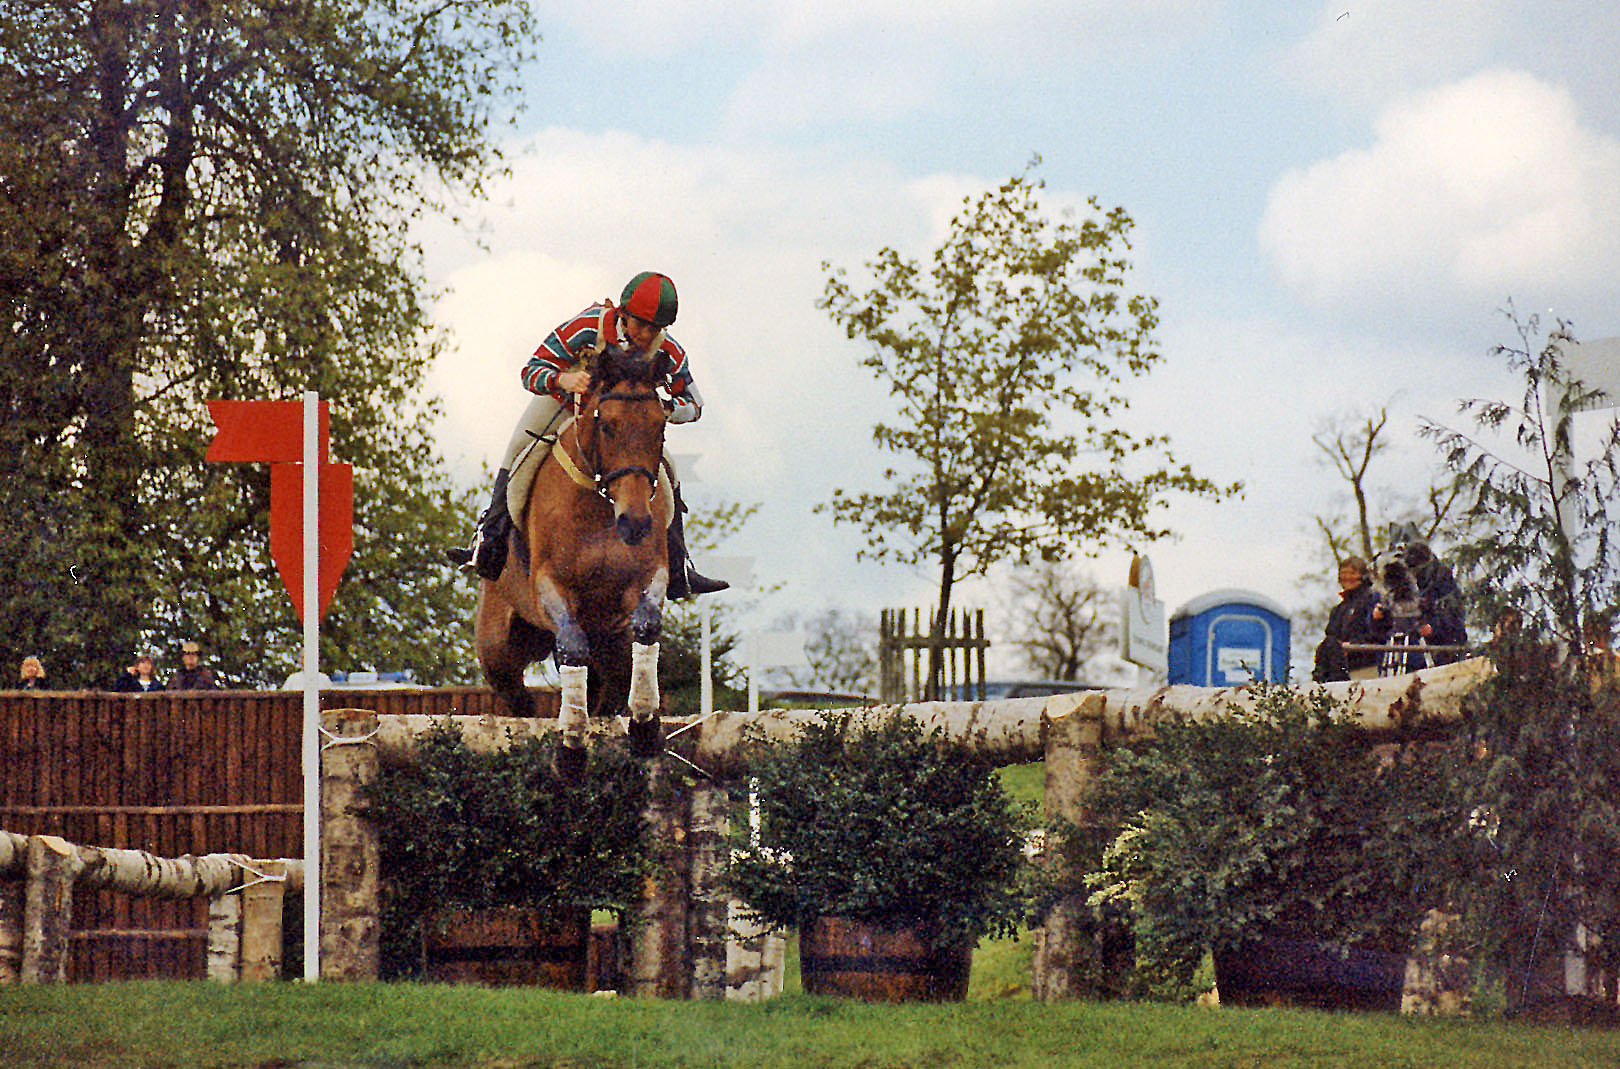 Wendy Schaeffer at the 1996 Badminton Horse Trials - photo by Beechwood Photography via Flickr (CC BY-NC-SA 2.0)